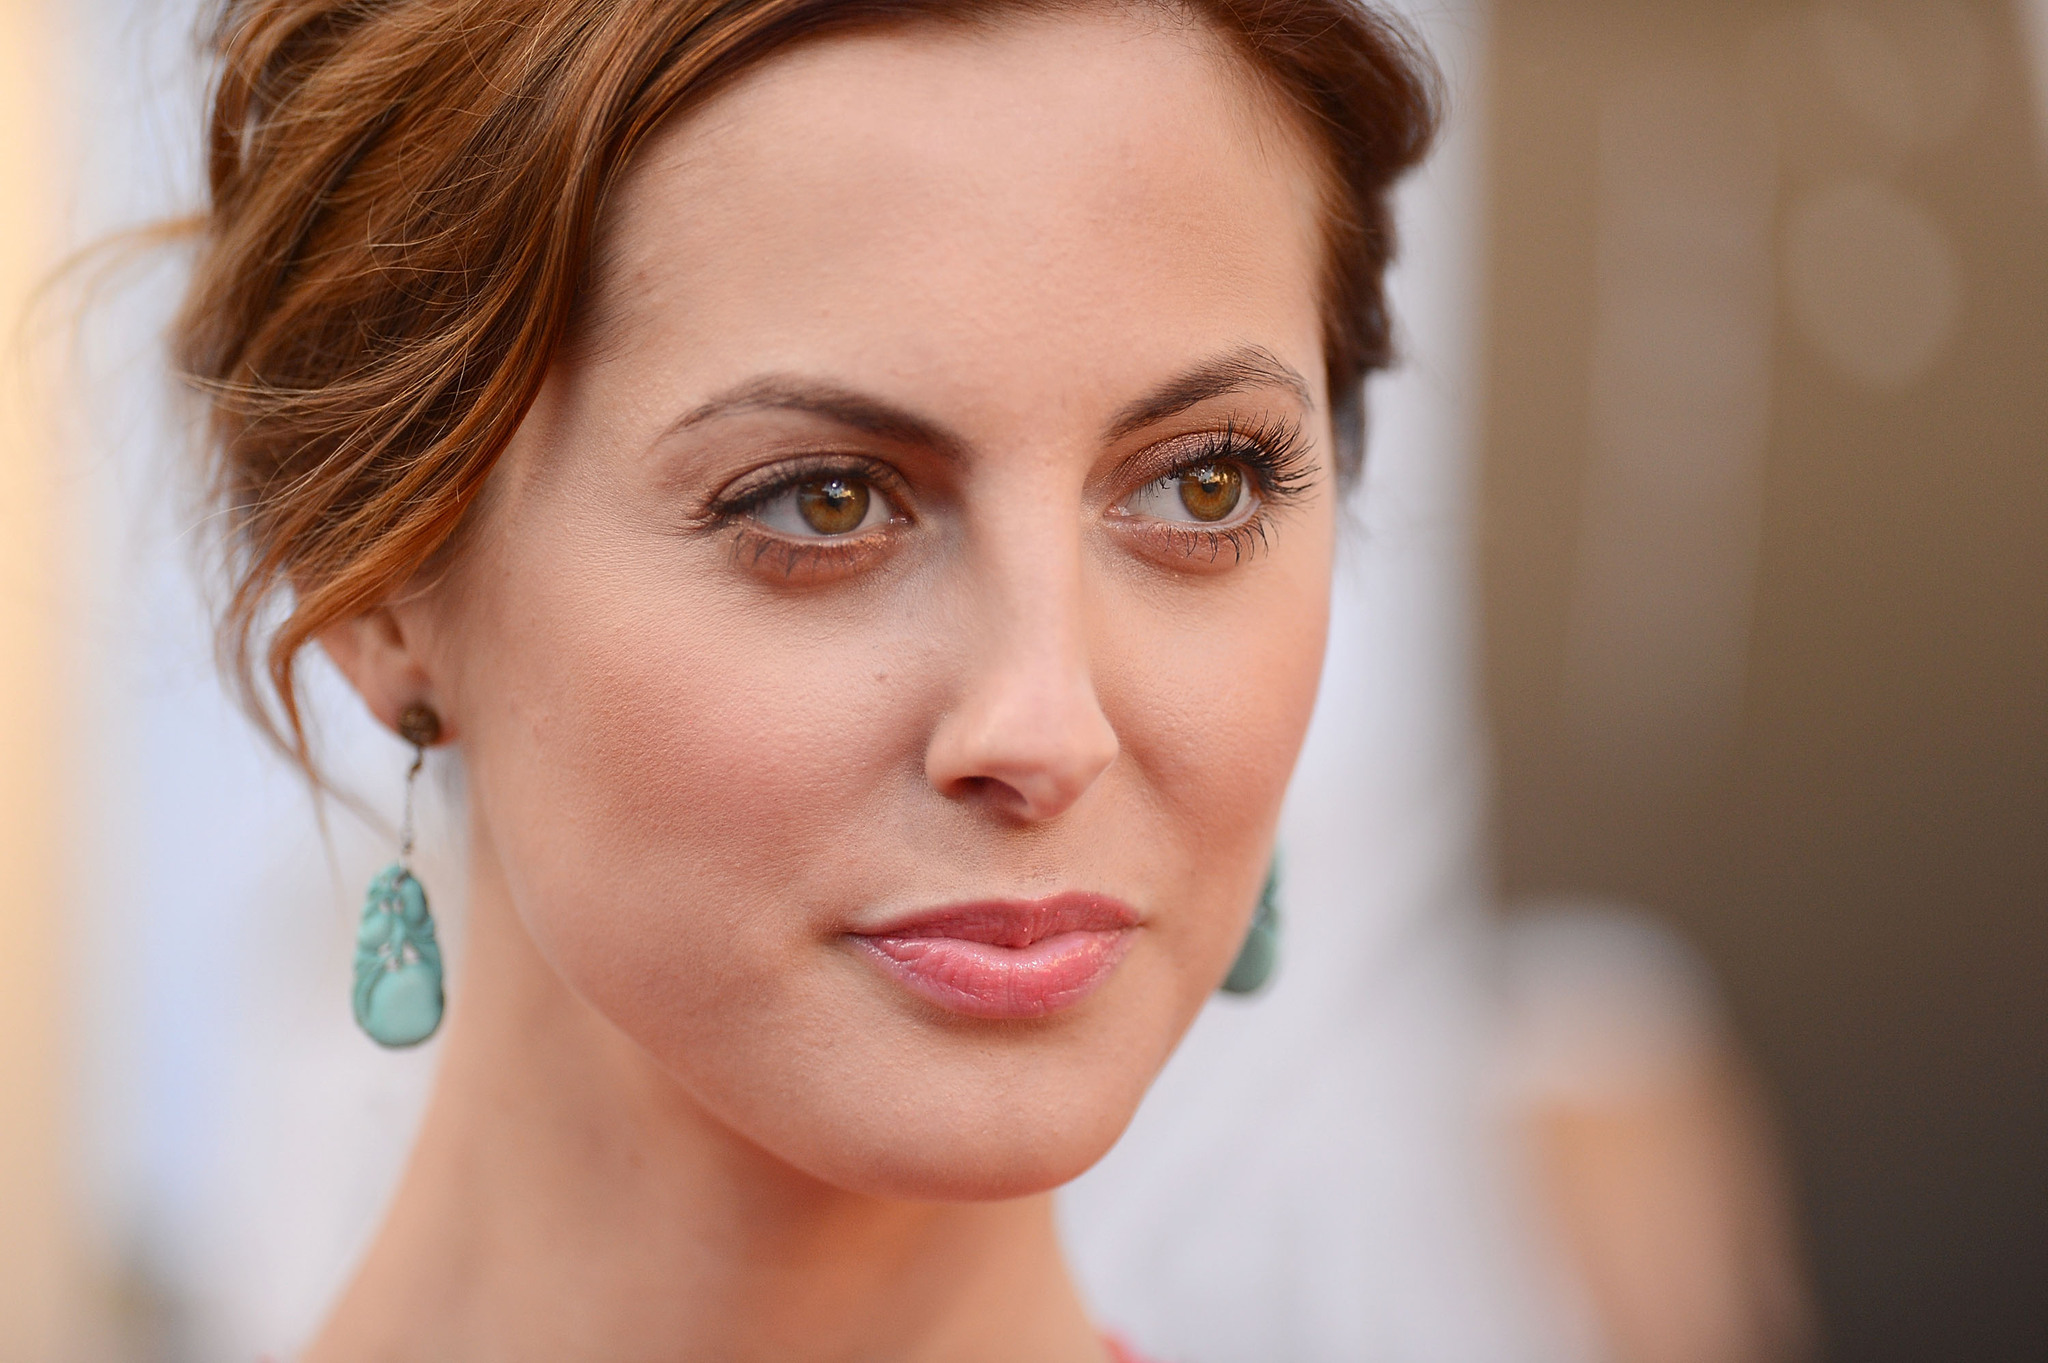 Eva Amurri Martino at an event for That's My Boy (2012)